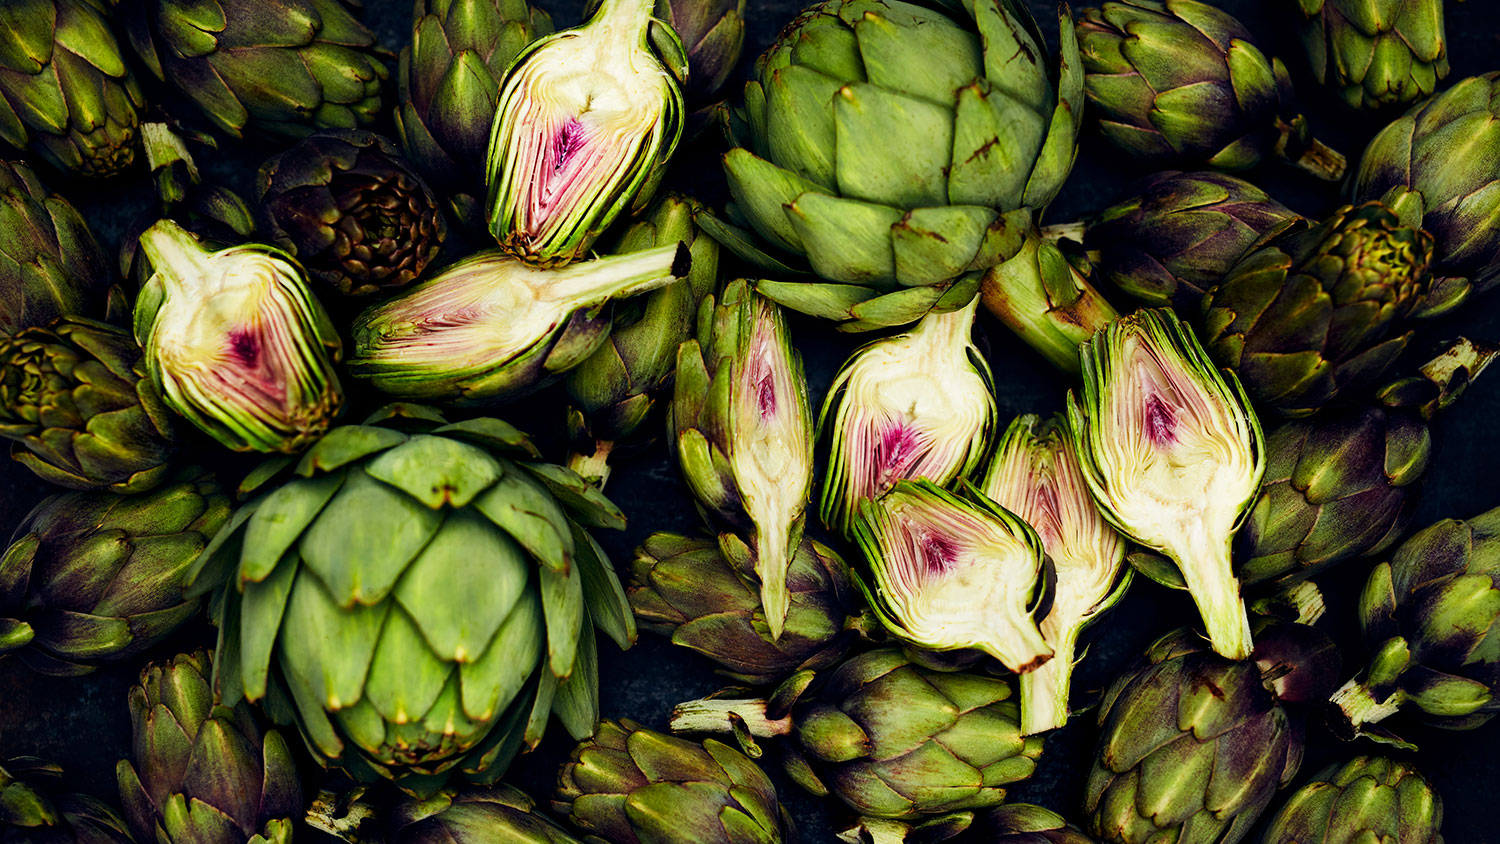 8 chefs on their favorite way to eat artichokes